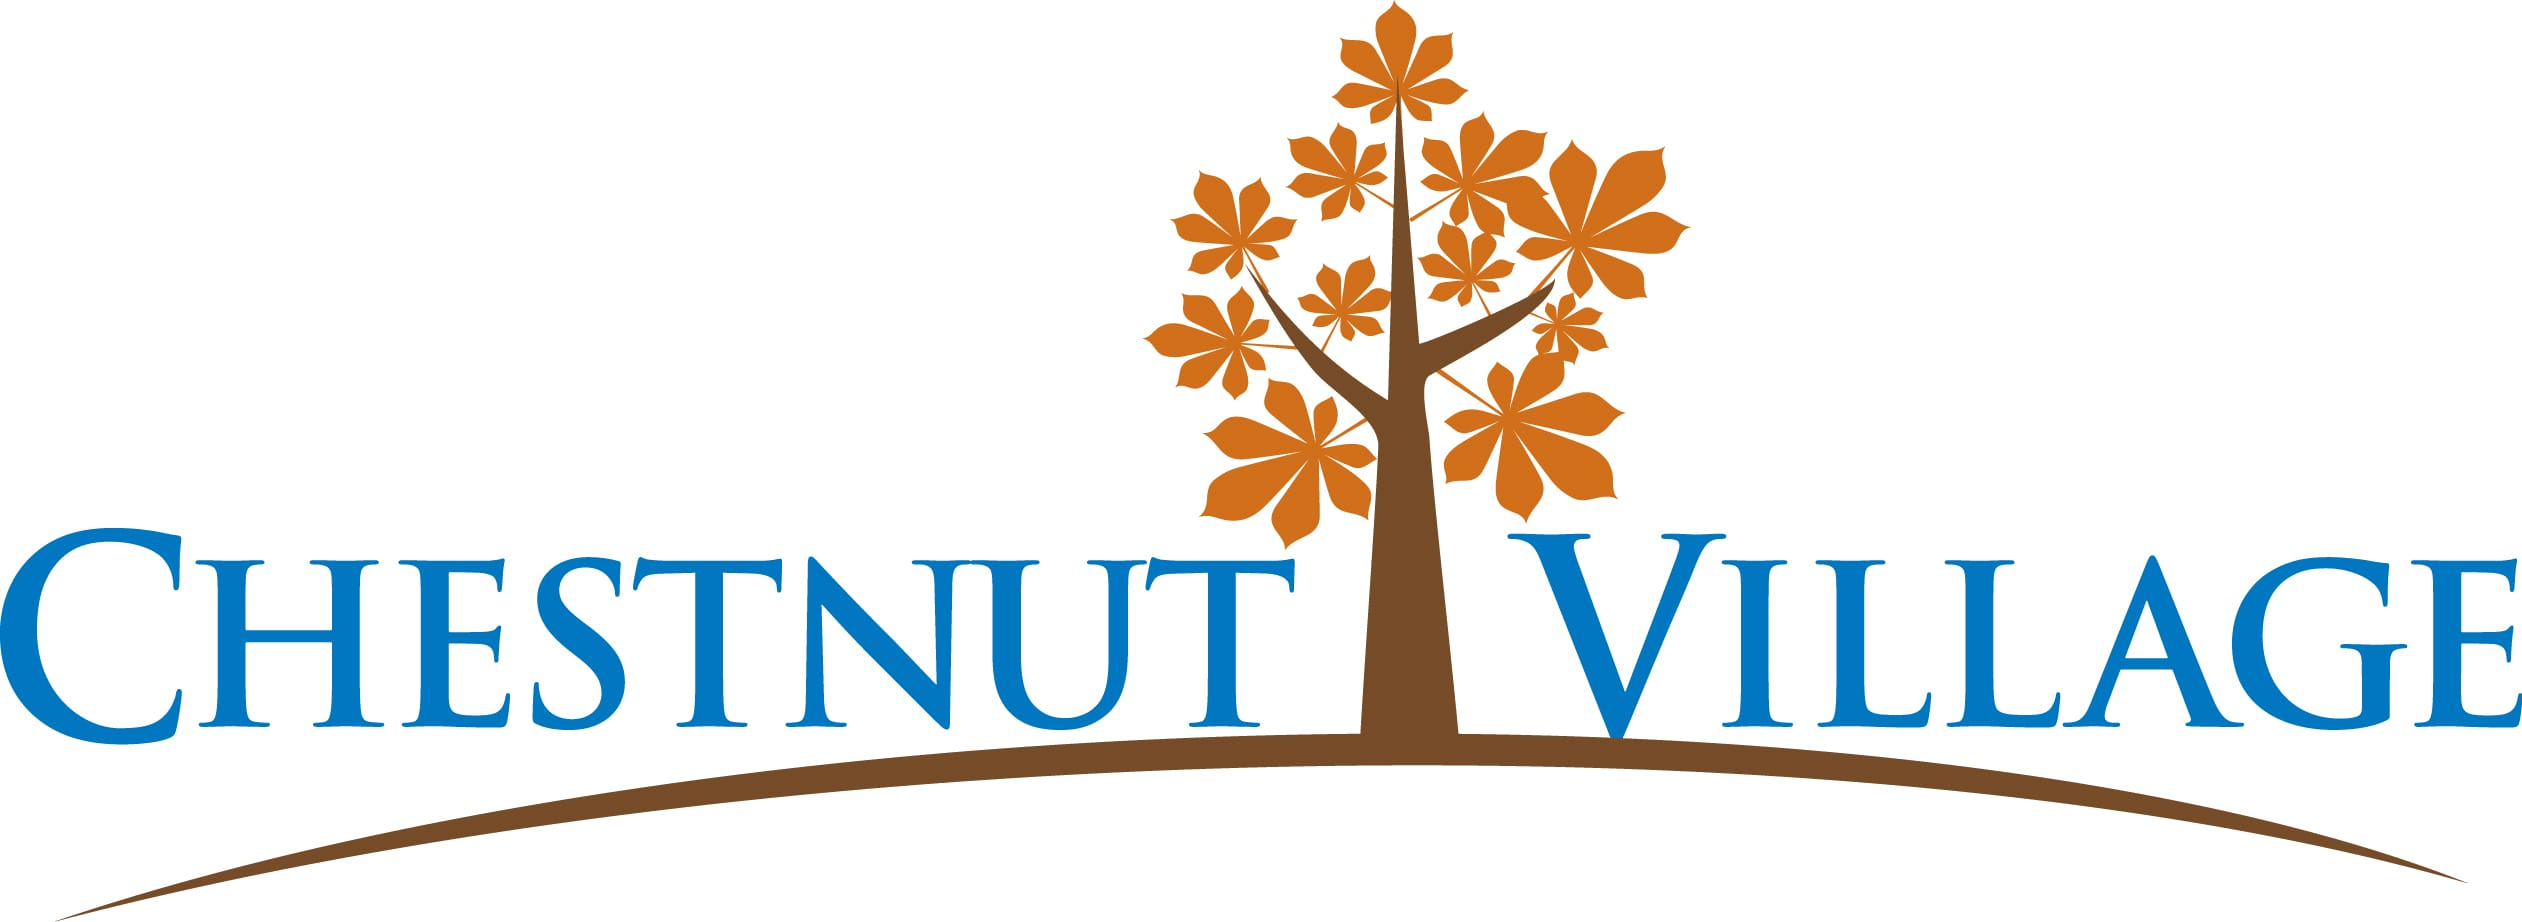 ChestnutVillage_FinalLogo